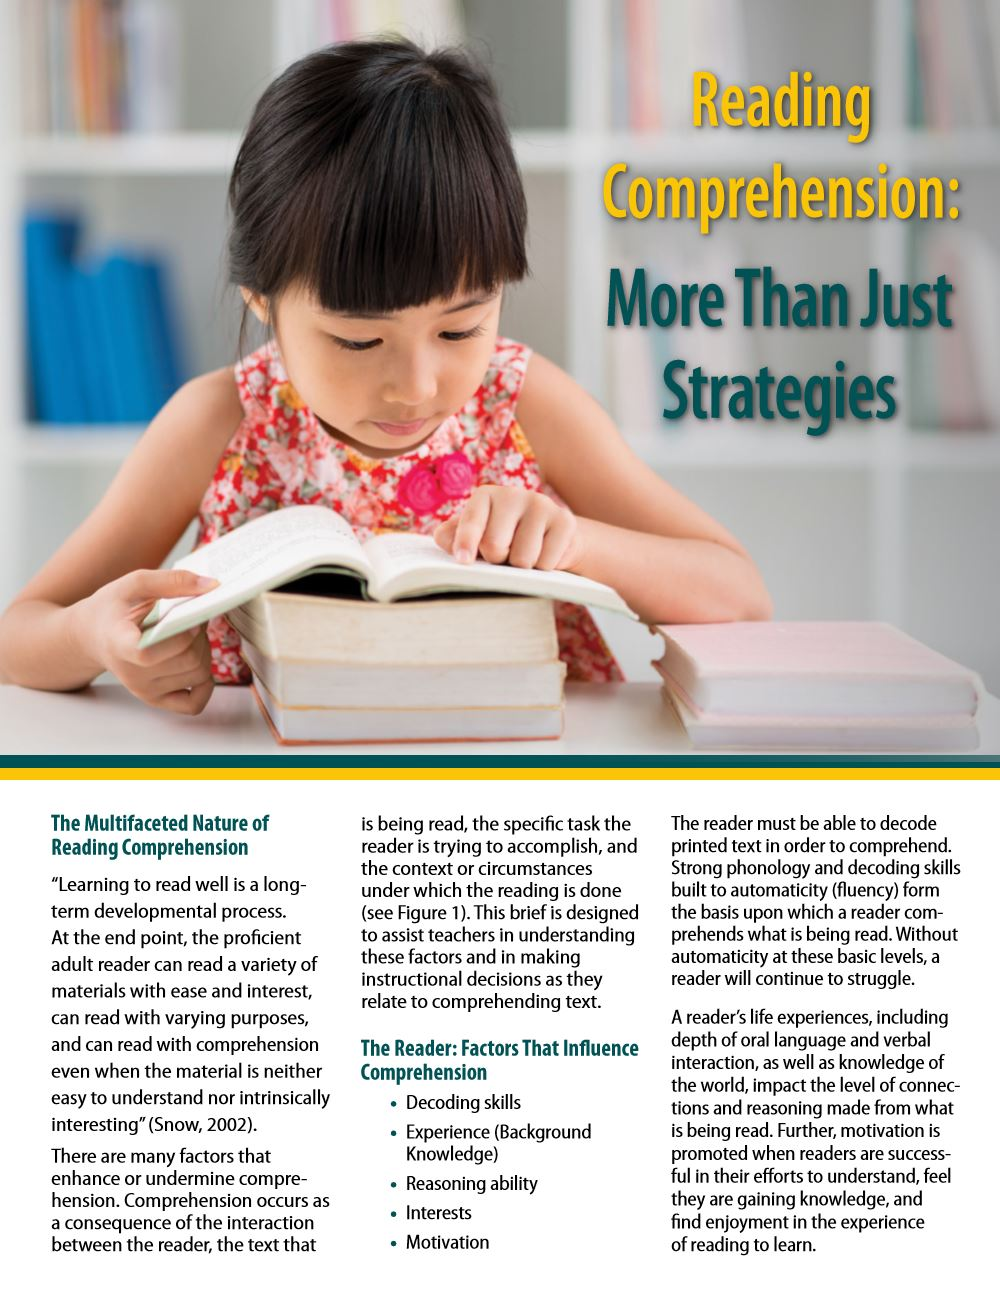 Reading Comprehension: More than Just Strategies